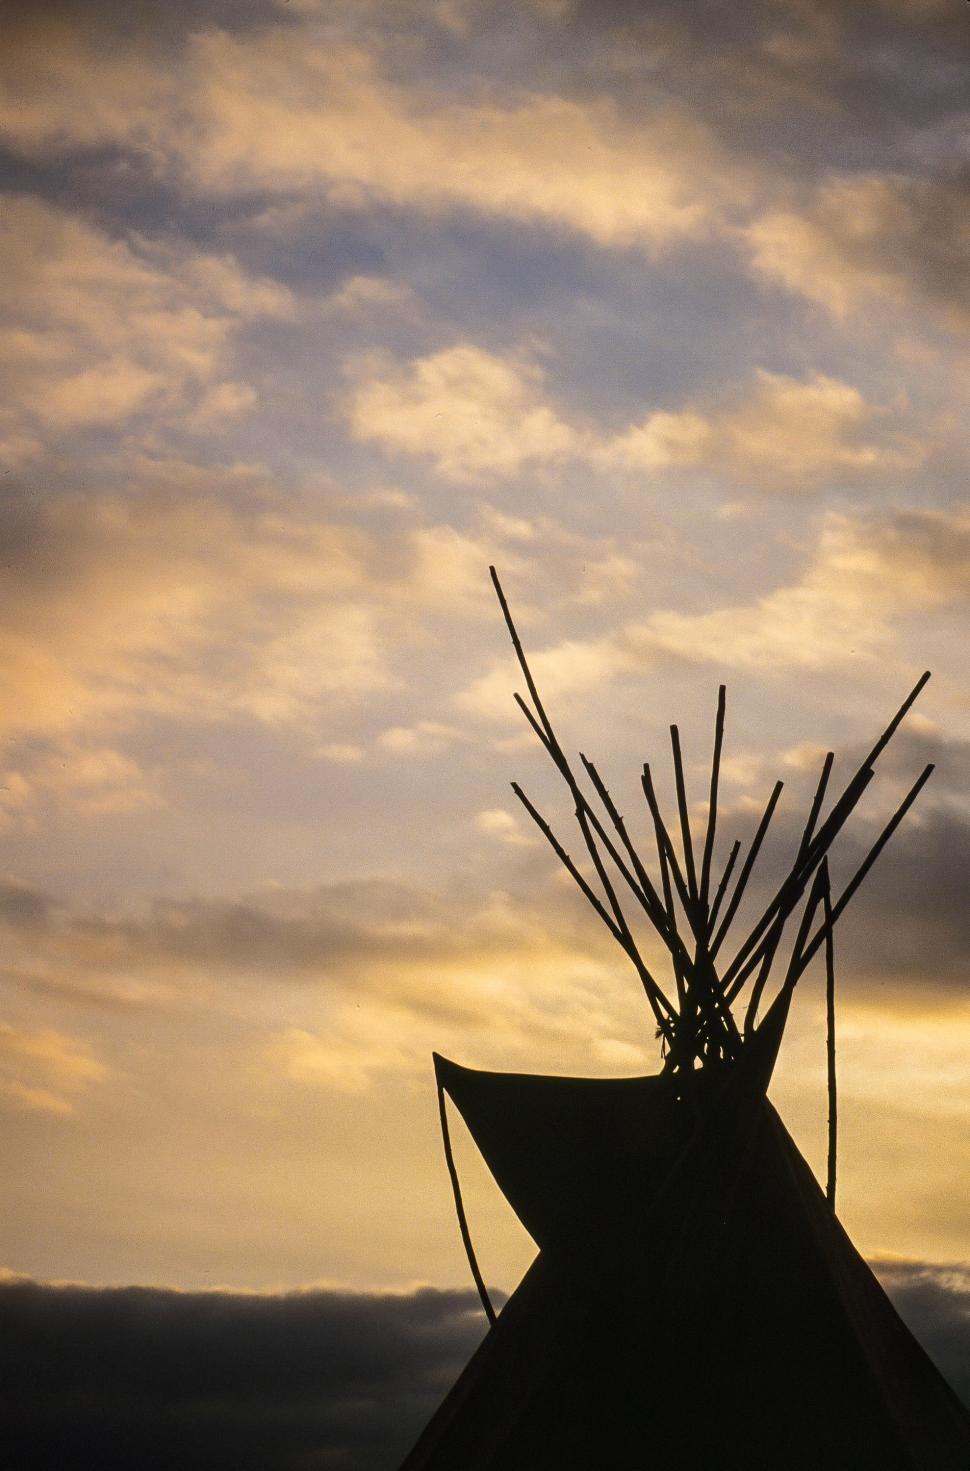 Download Free Stock HD Photo of Teepee silhouette Online